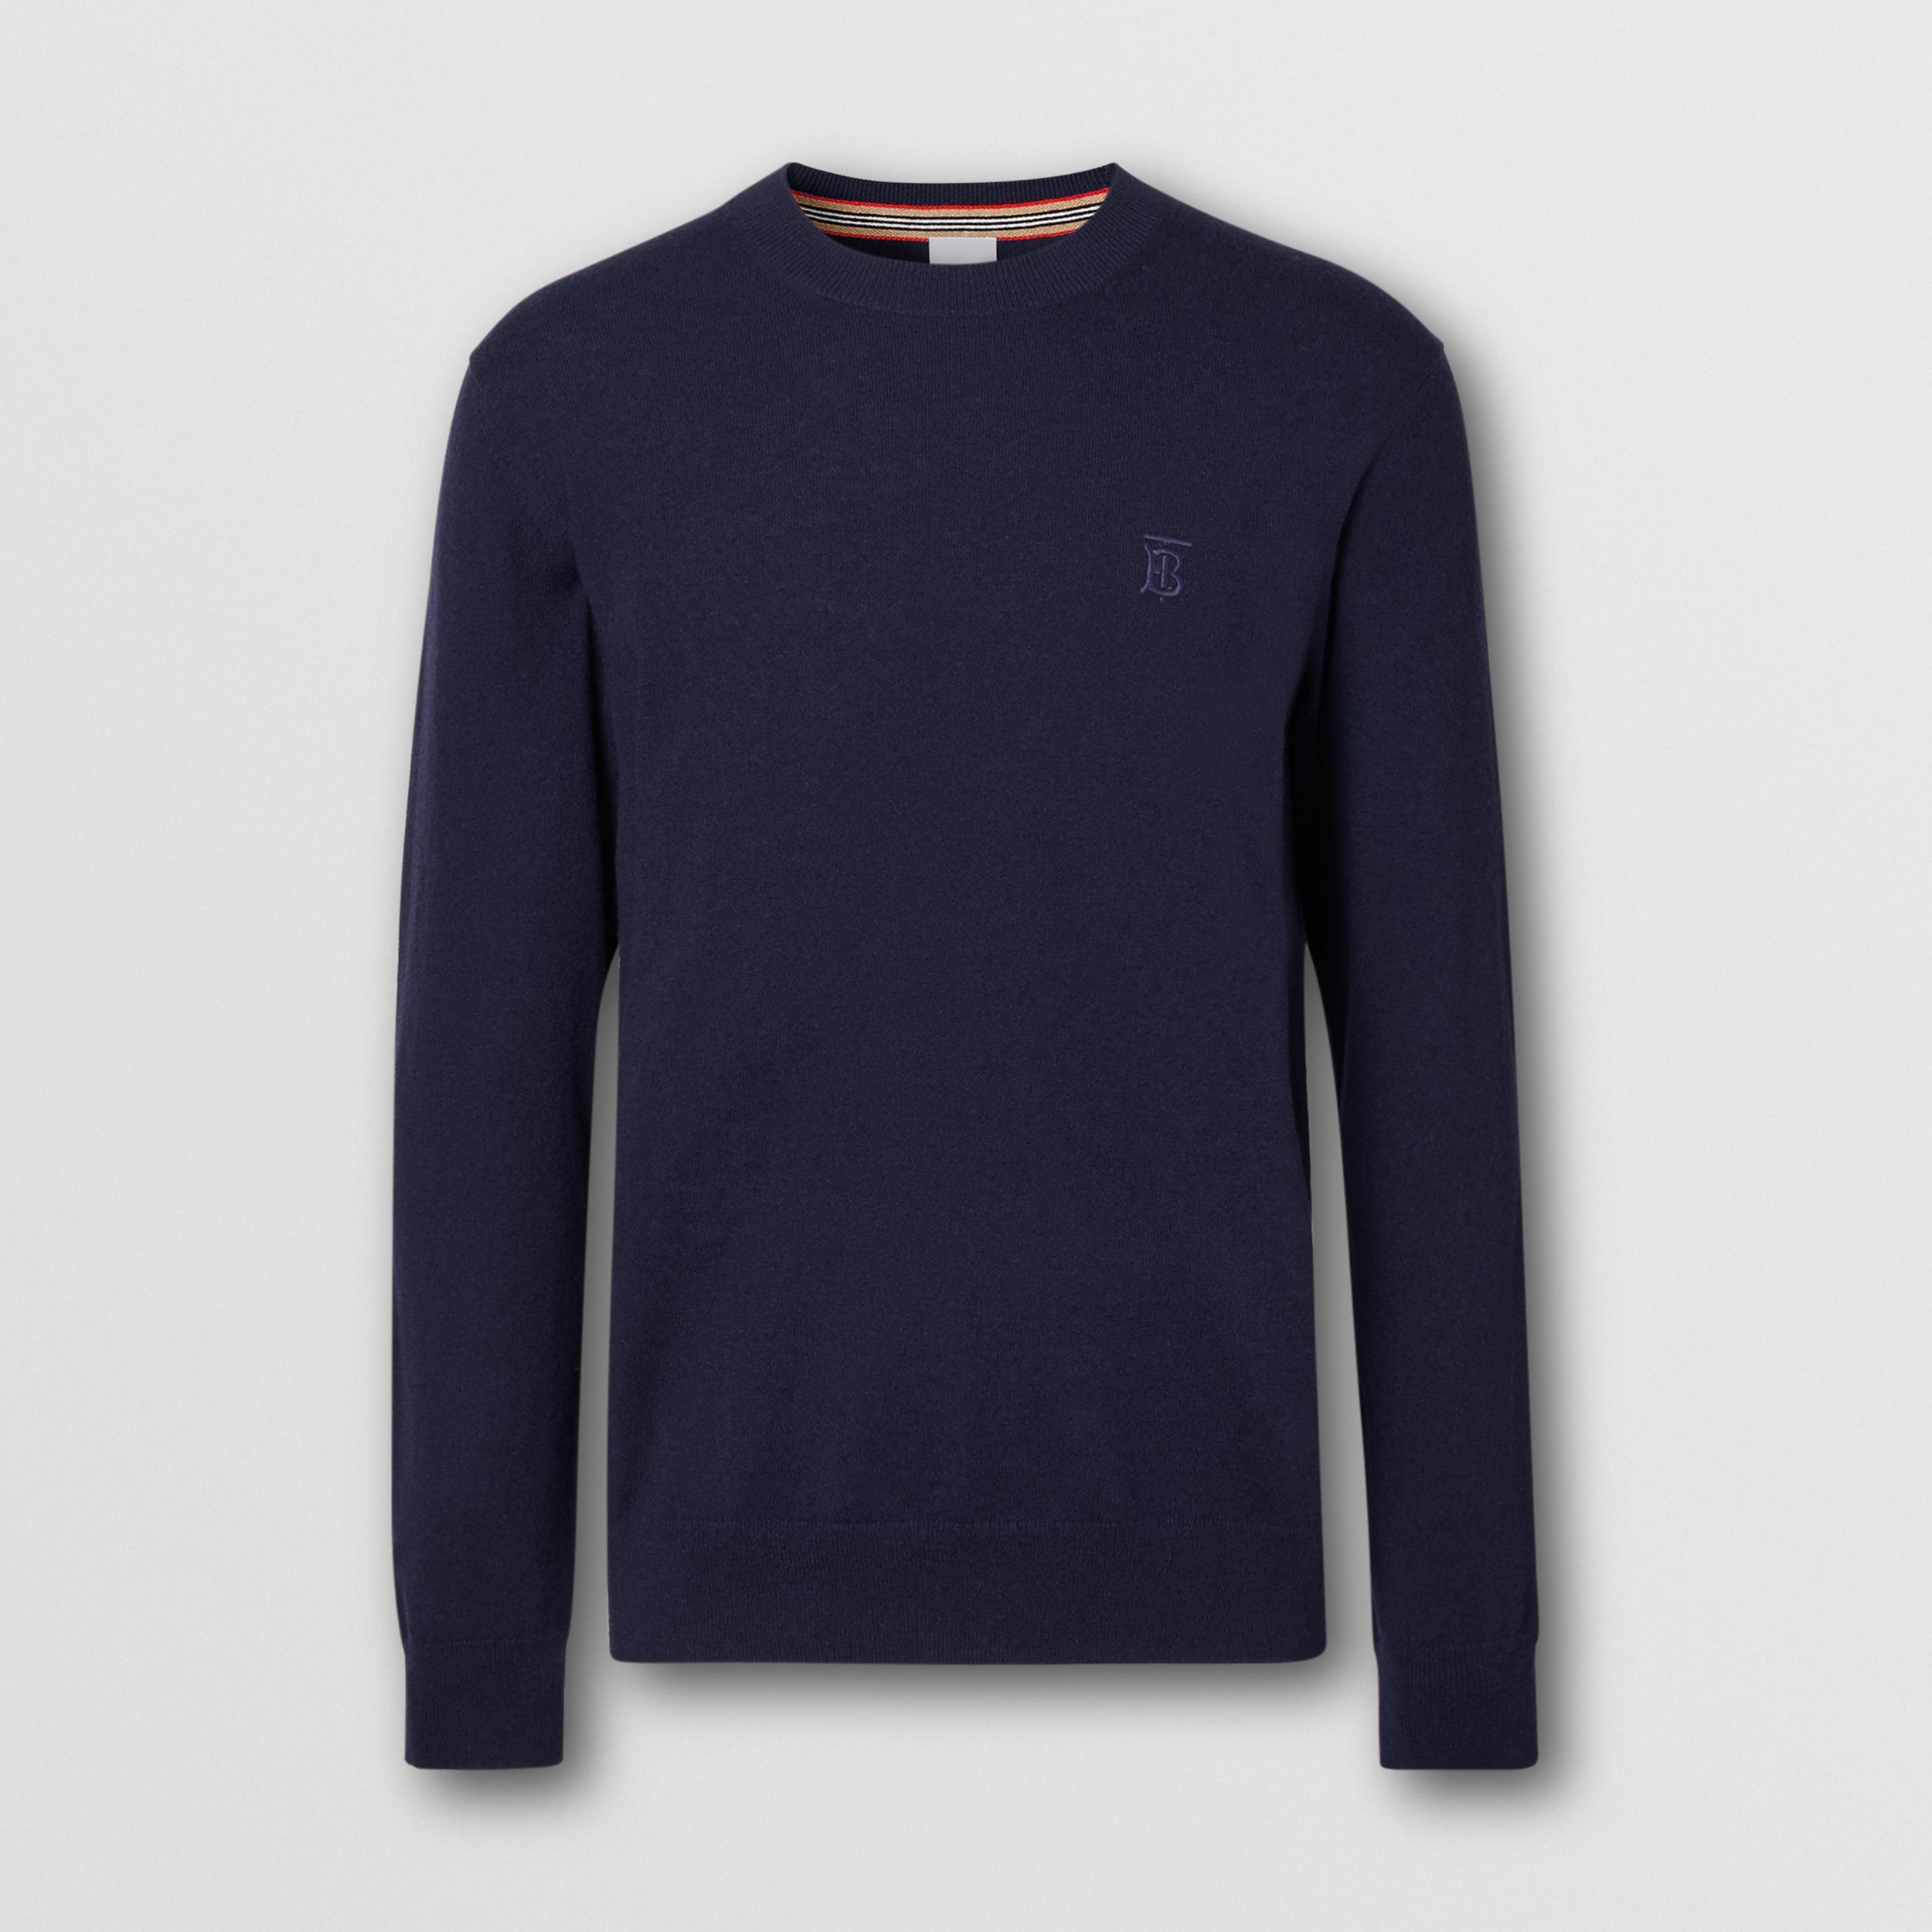 Monogram Motif Cashmere Sweater in Navy - Men | Burberry - 4